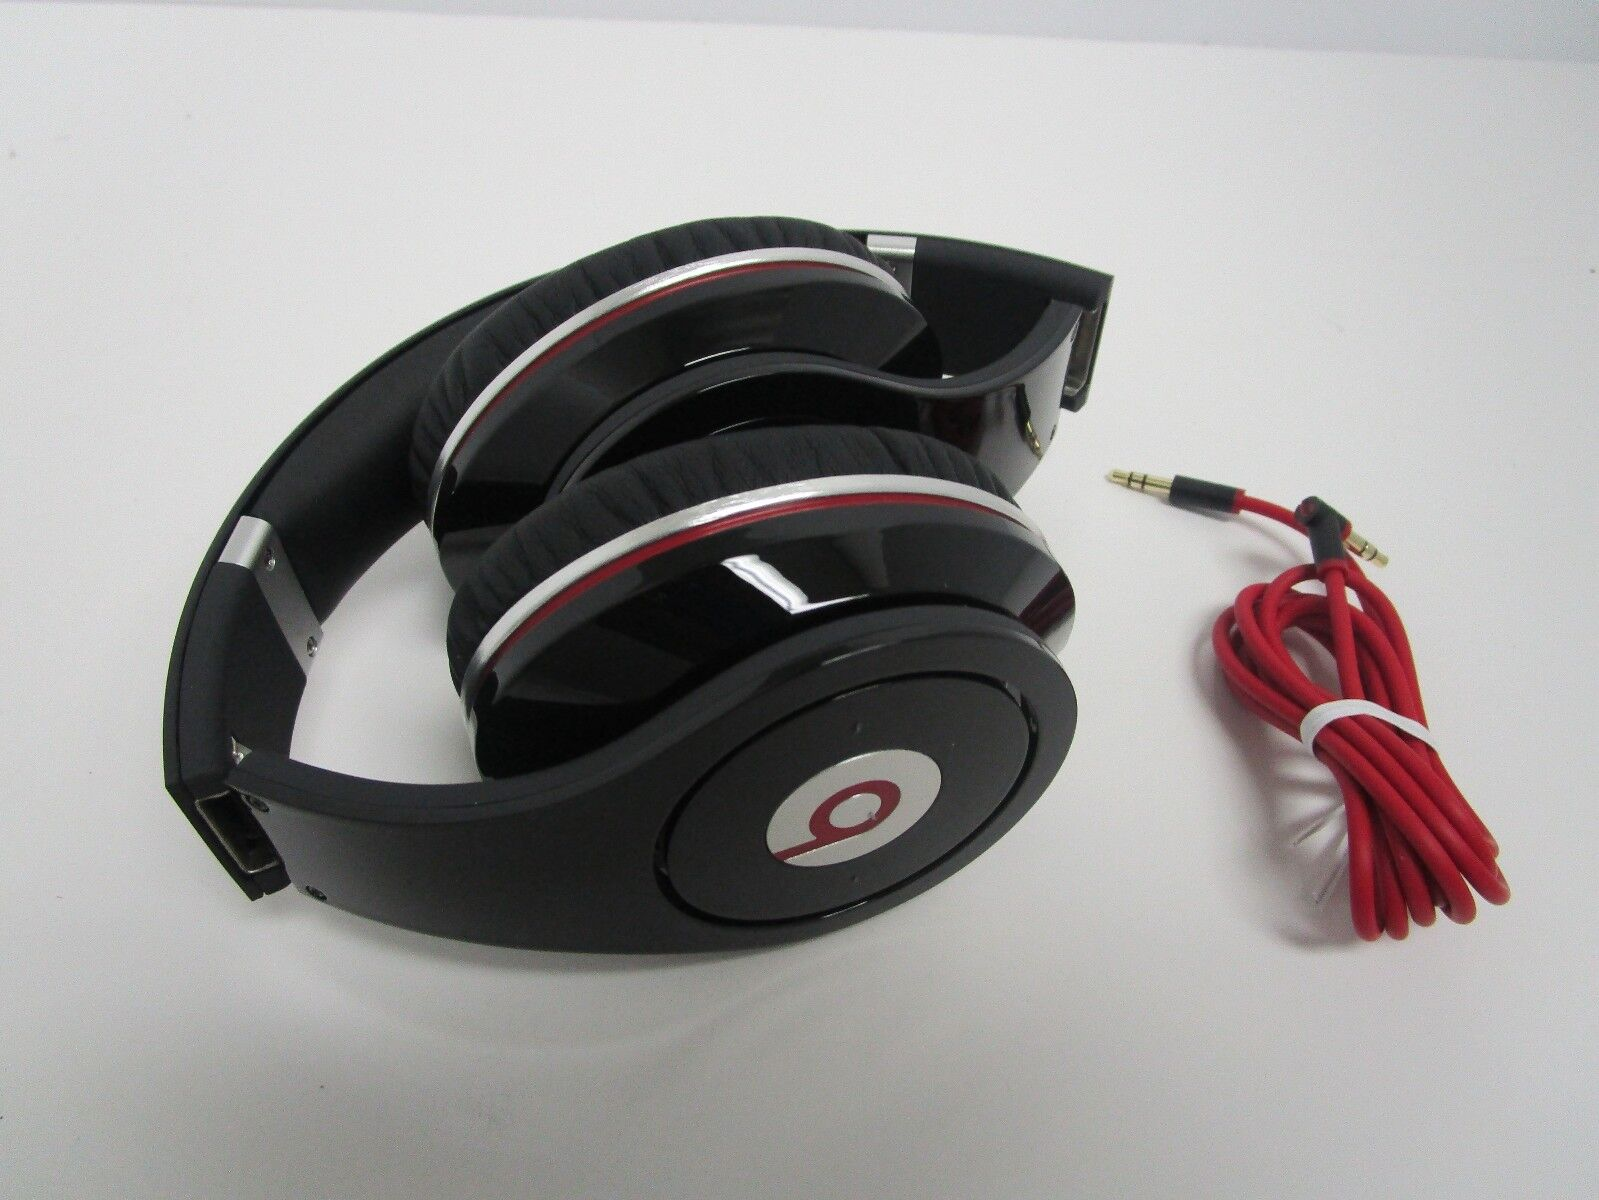 Beats By Dre - Genuine Beats by Dr. Dre Studio Wired Headphones *XMAS SPECIAL*